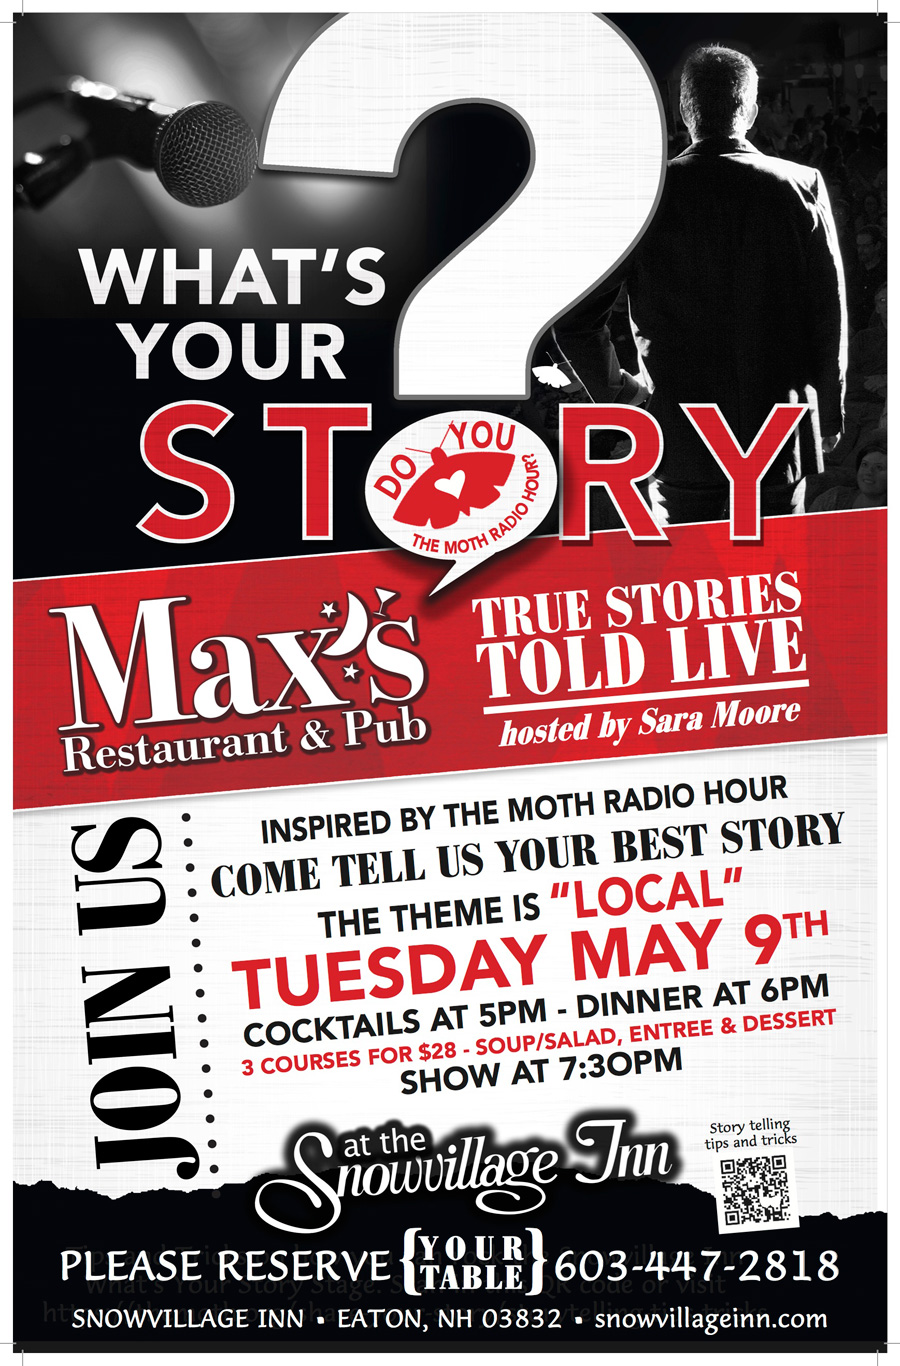 Max's-Story-Telling-CC-may-9